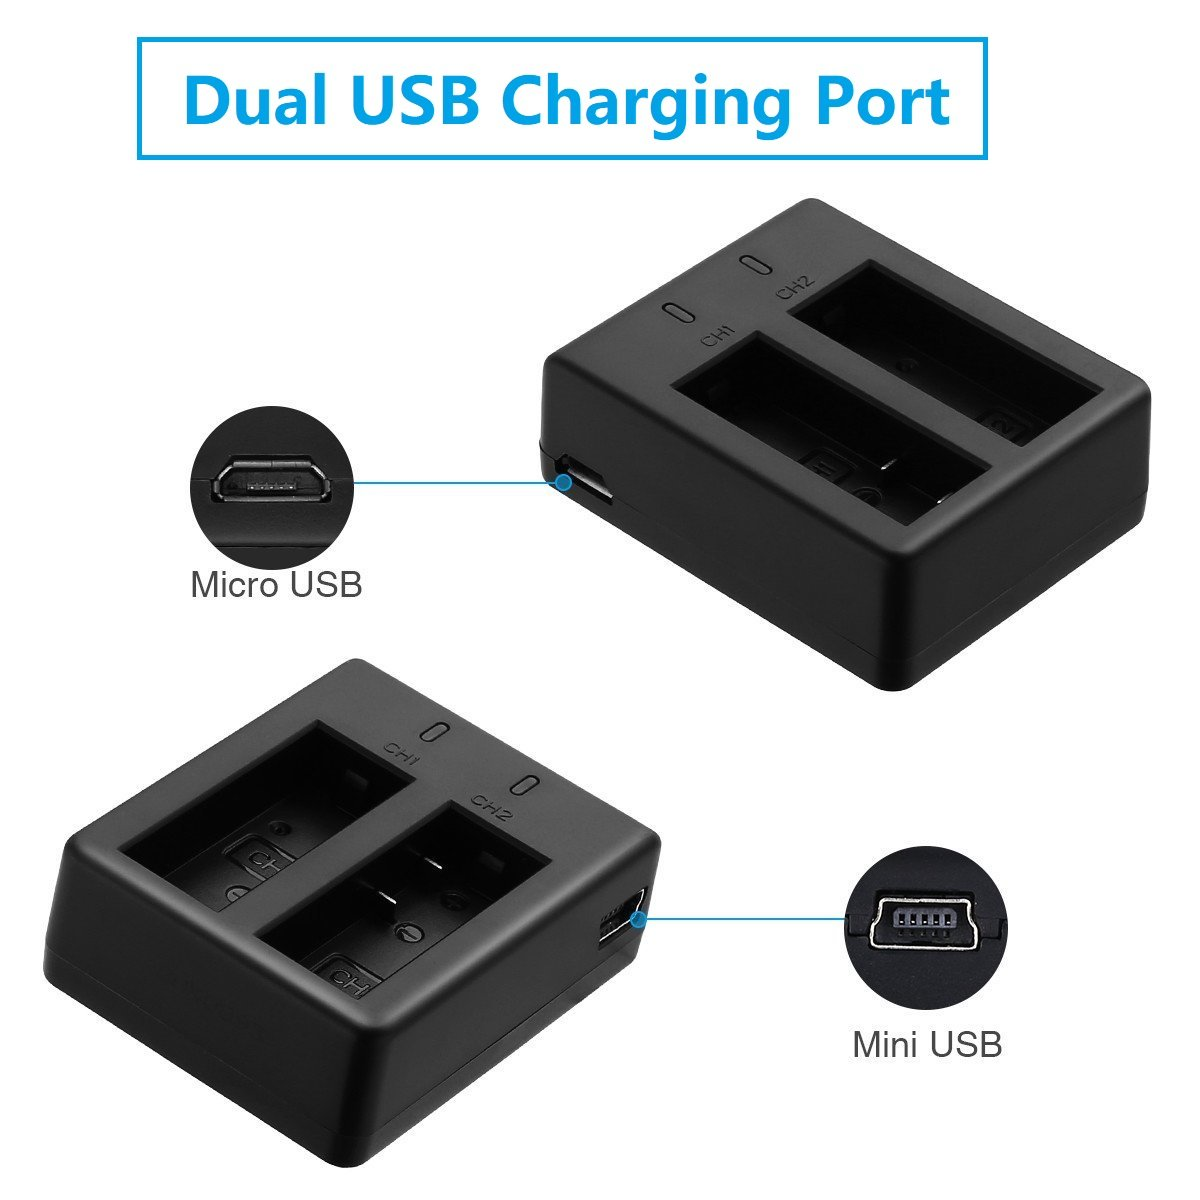 Vvhooy 1350mah Rechargeable Action Camera Battery Dual Charger Waterproof Xiaomi Yi Discovery 4k Compatible Camerapack Of 3 Vv 31350 Yi4kb Accessory Bundles